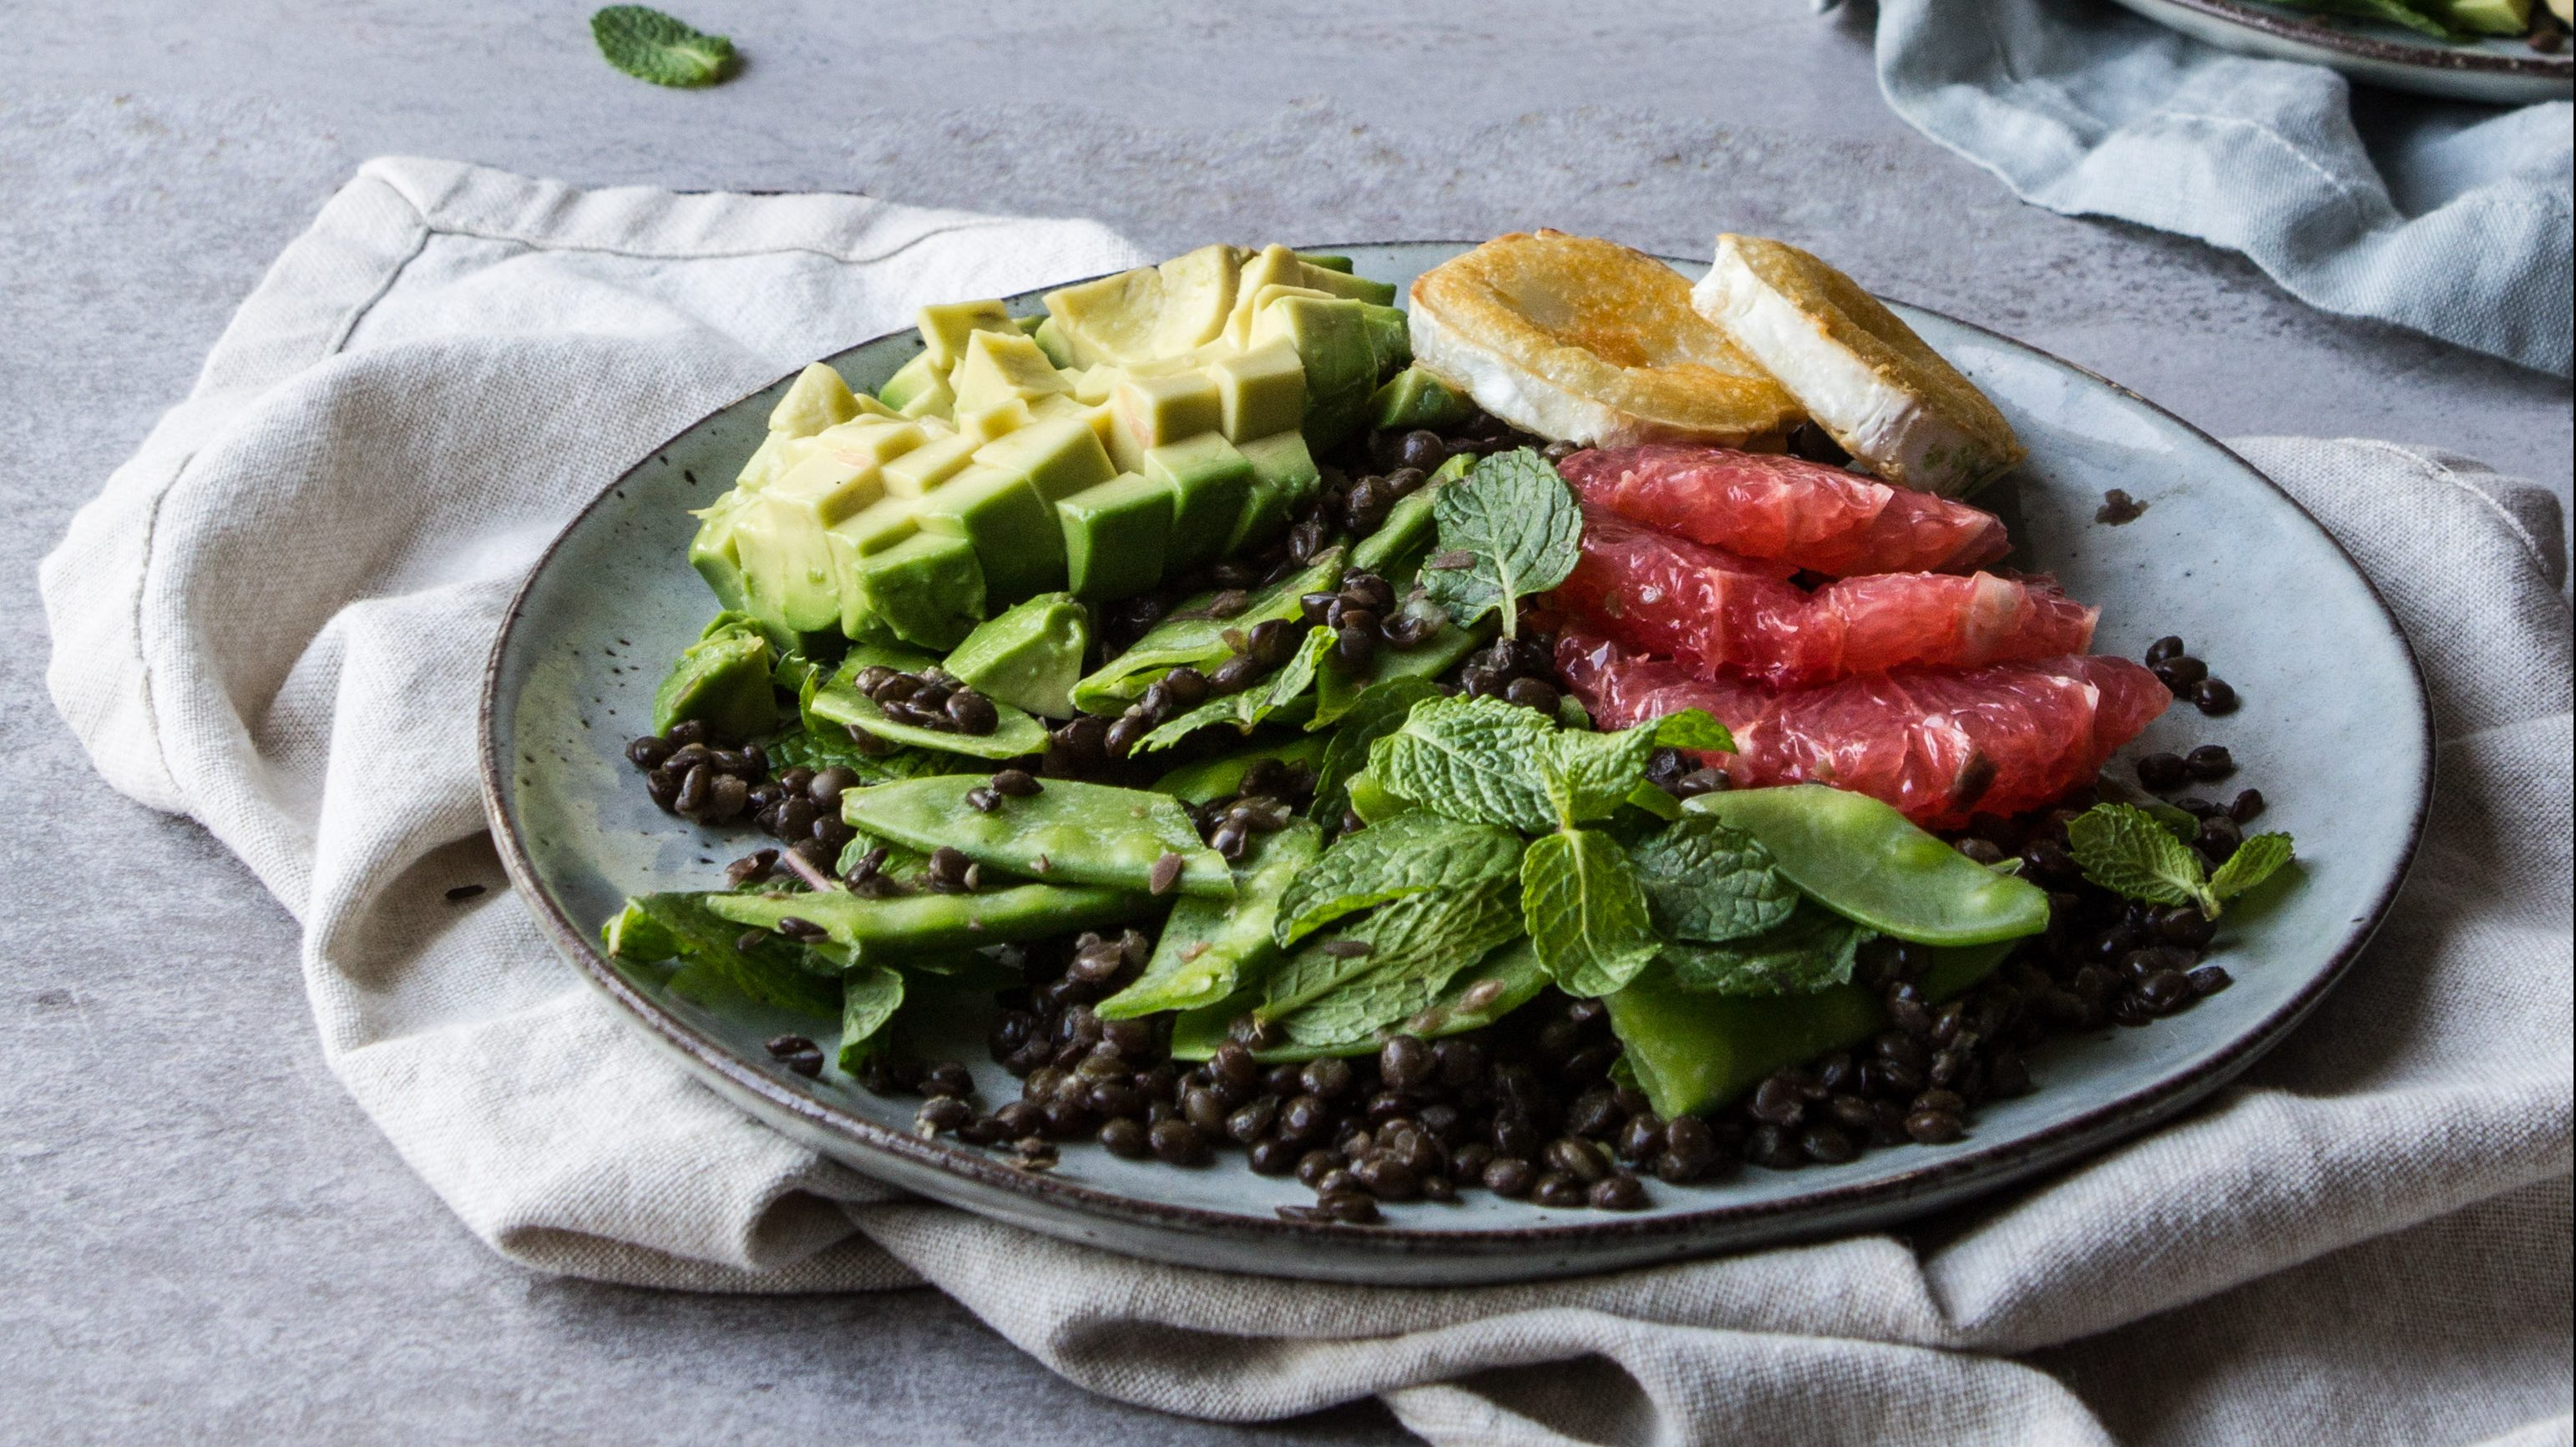 Lentil salad with avocado, grapefruit and gat cheese